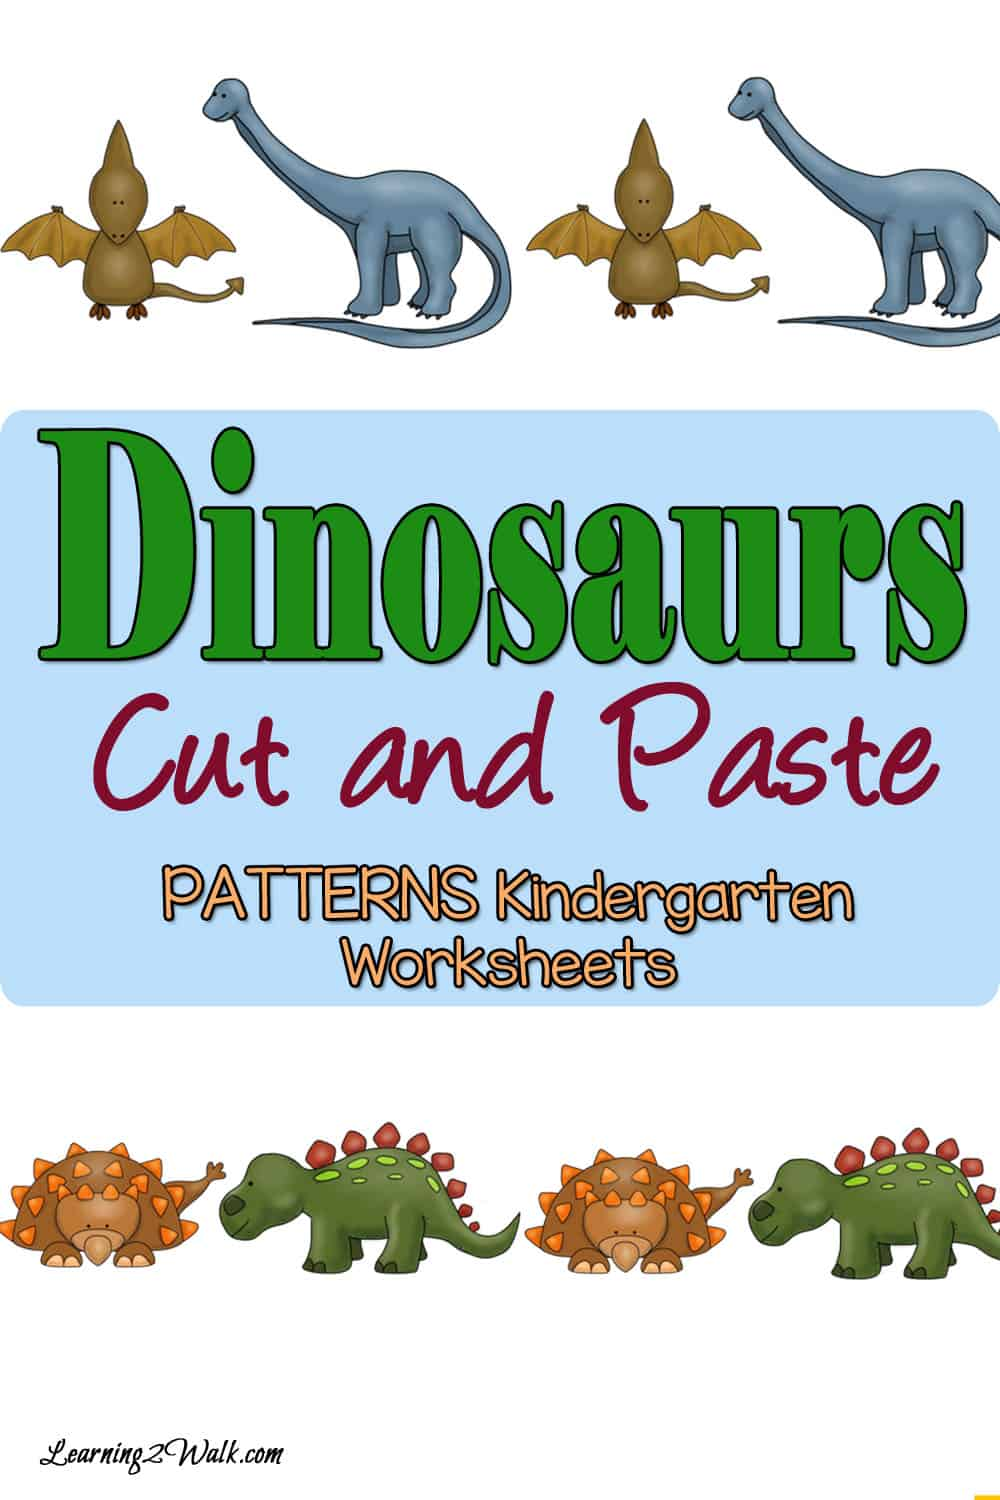 Here are some free hands on dinosaurs cut and paste patterns worksheets for kindergarten that your kids will love.